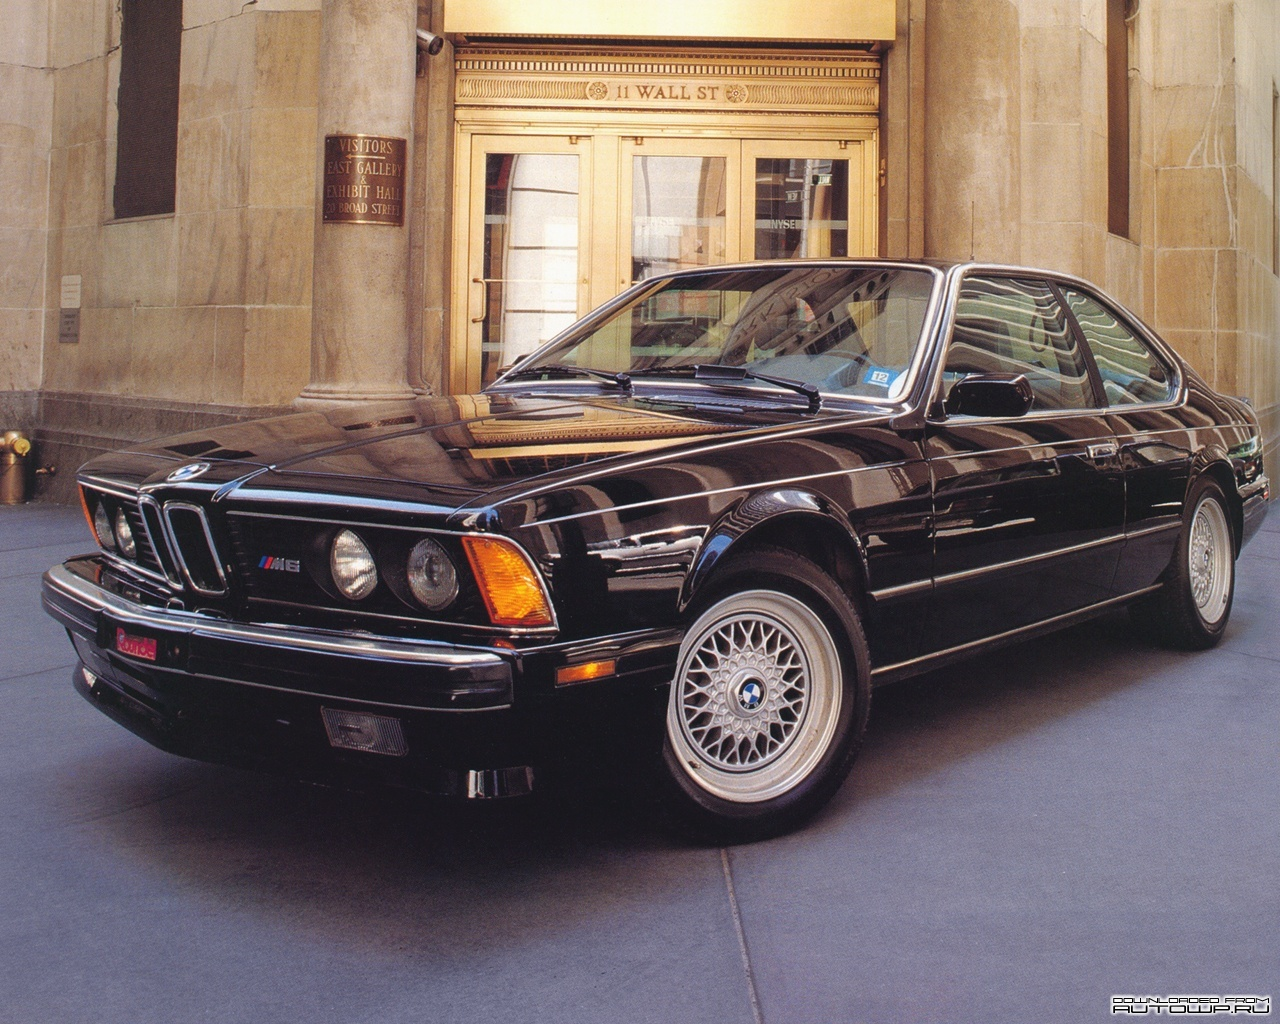 BMW M6 E24 photos  PhotoGallery with 9 pics CarsBasecom